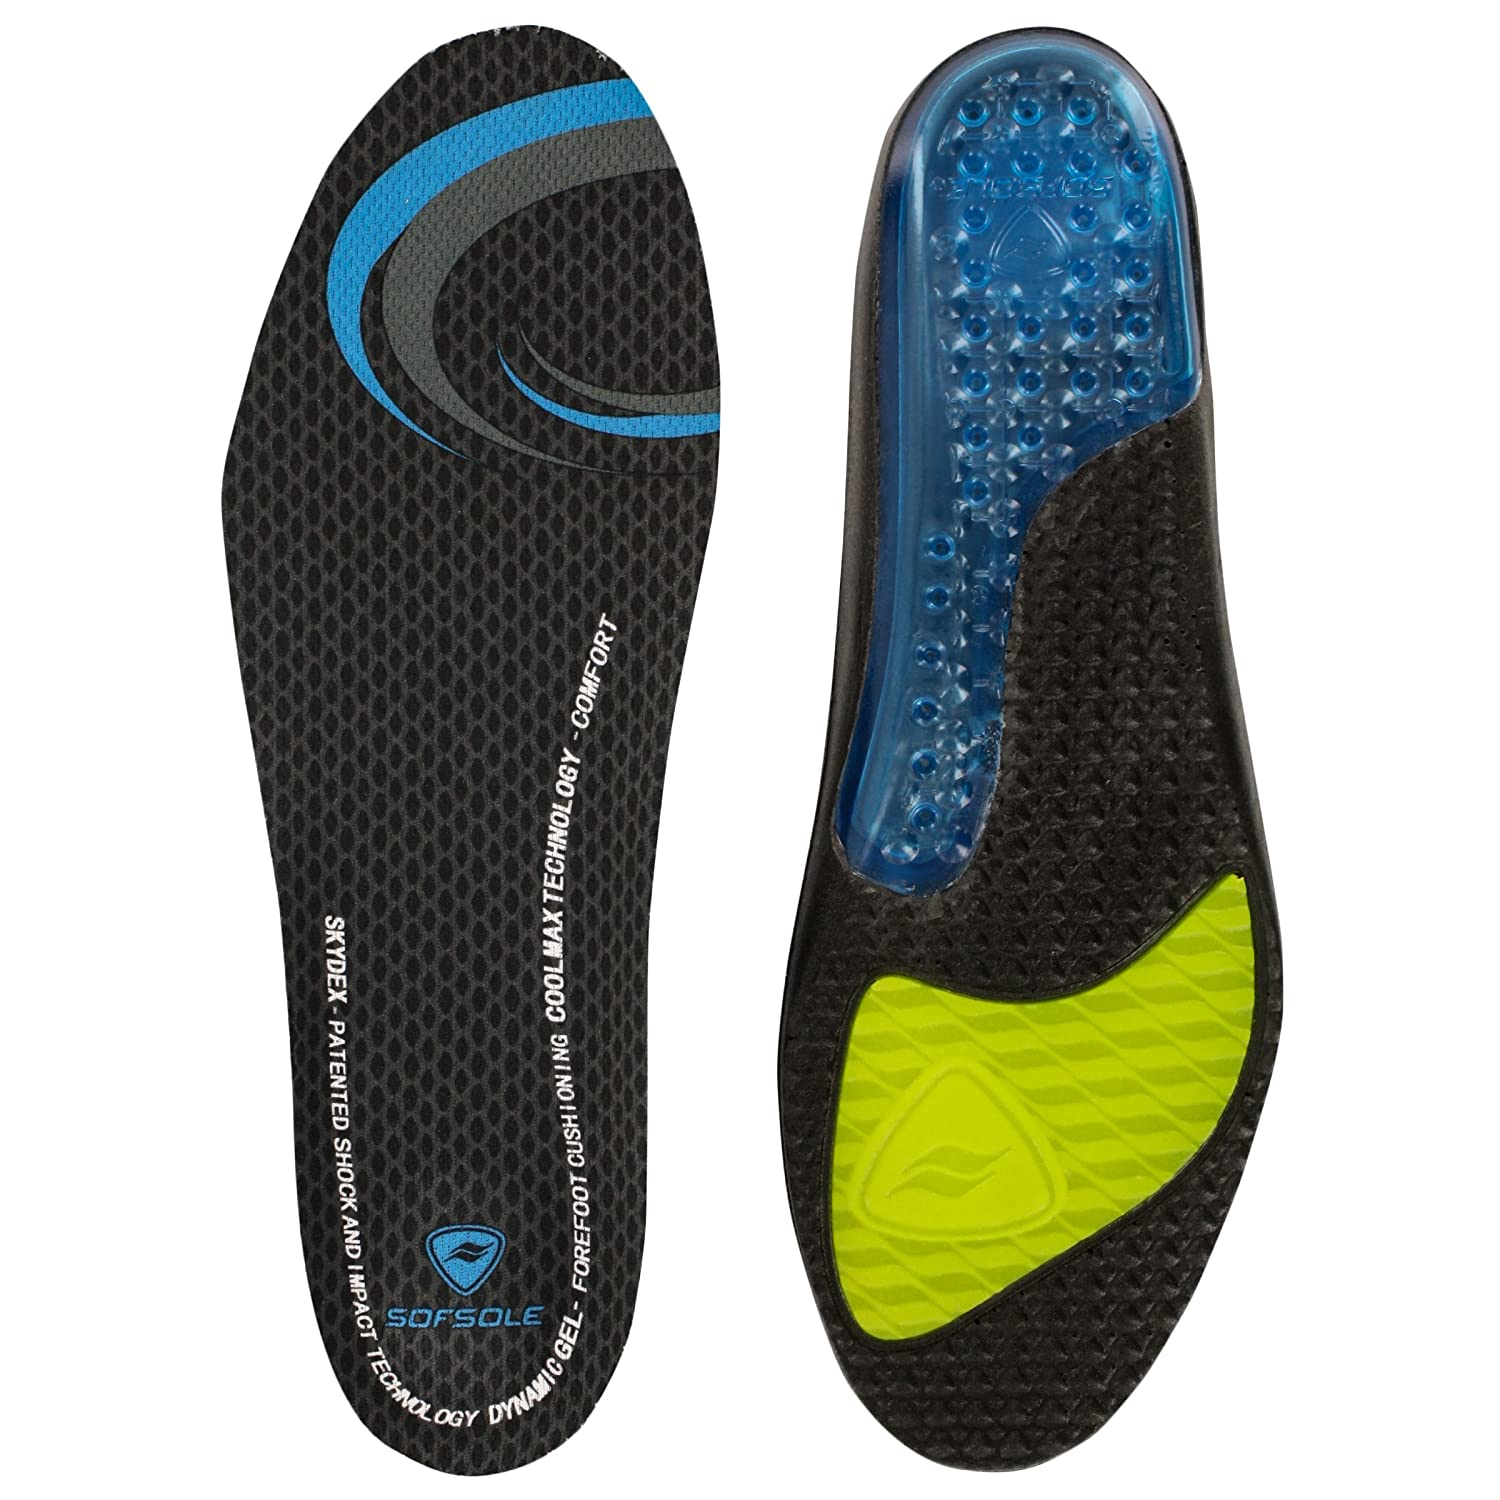 Choosing the Best Insoles for Standing All Day. We've talked about ten great options, but select the insole that conforms to your feet and your life! Here are a few elements to look out for when choosing an insole: Make sure it fits the type of shoes you wear most often.